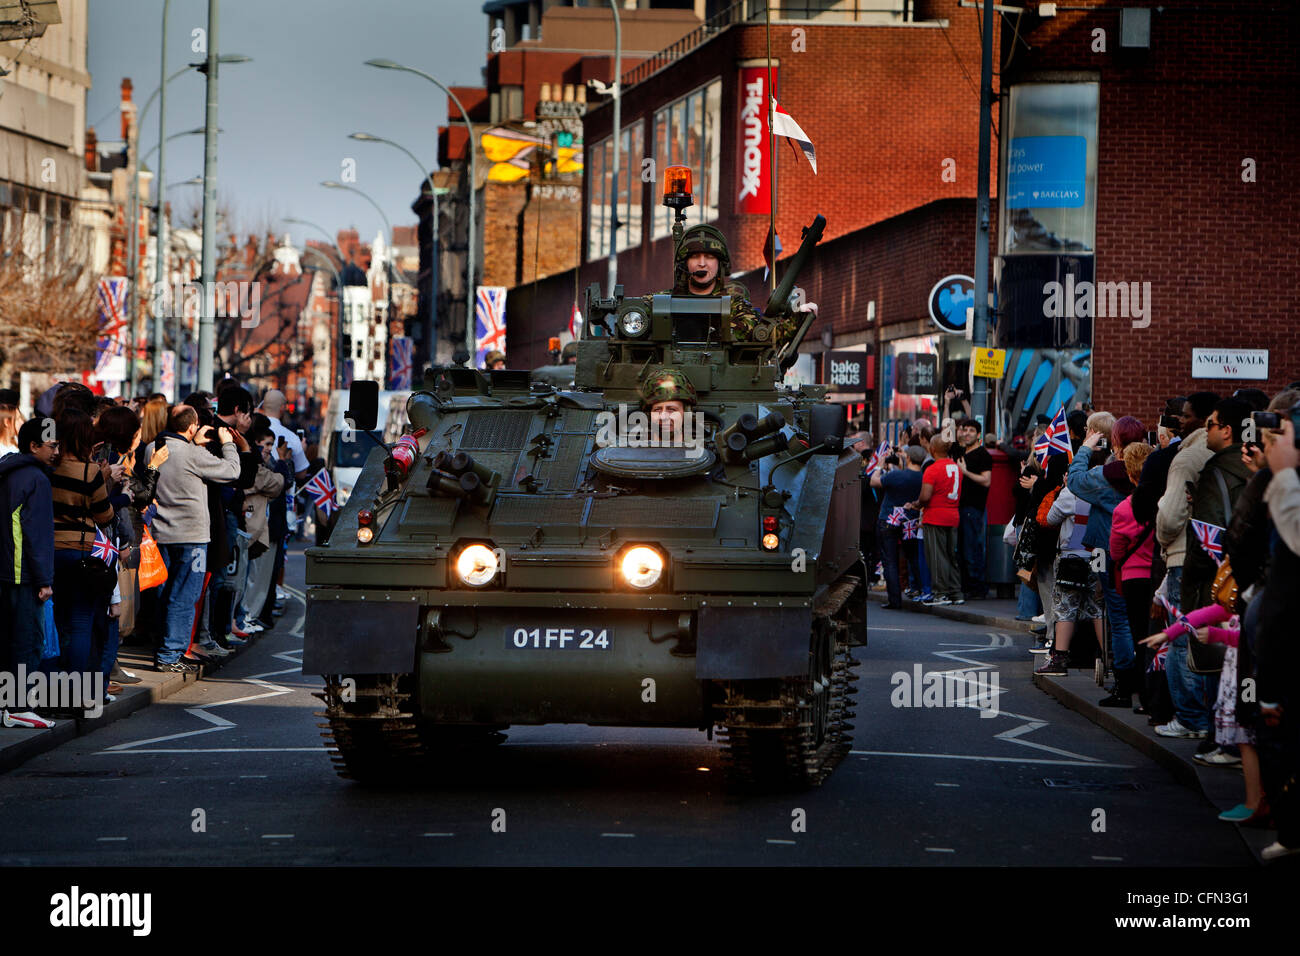 Troops in armoured vehicles drive past High street shops during a Royal Yeomanry parade, spectators watch from the - Stock Image